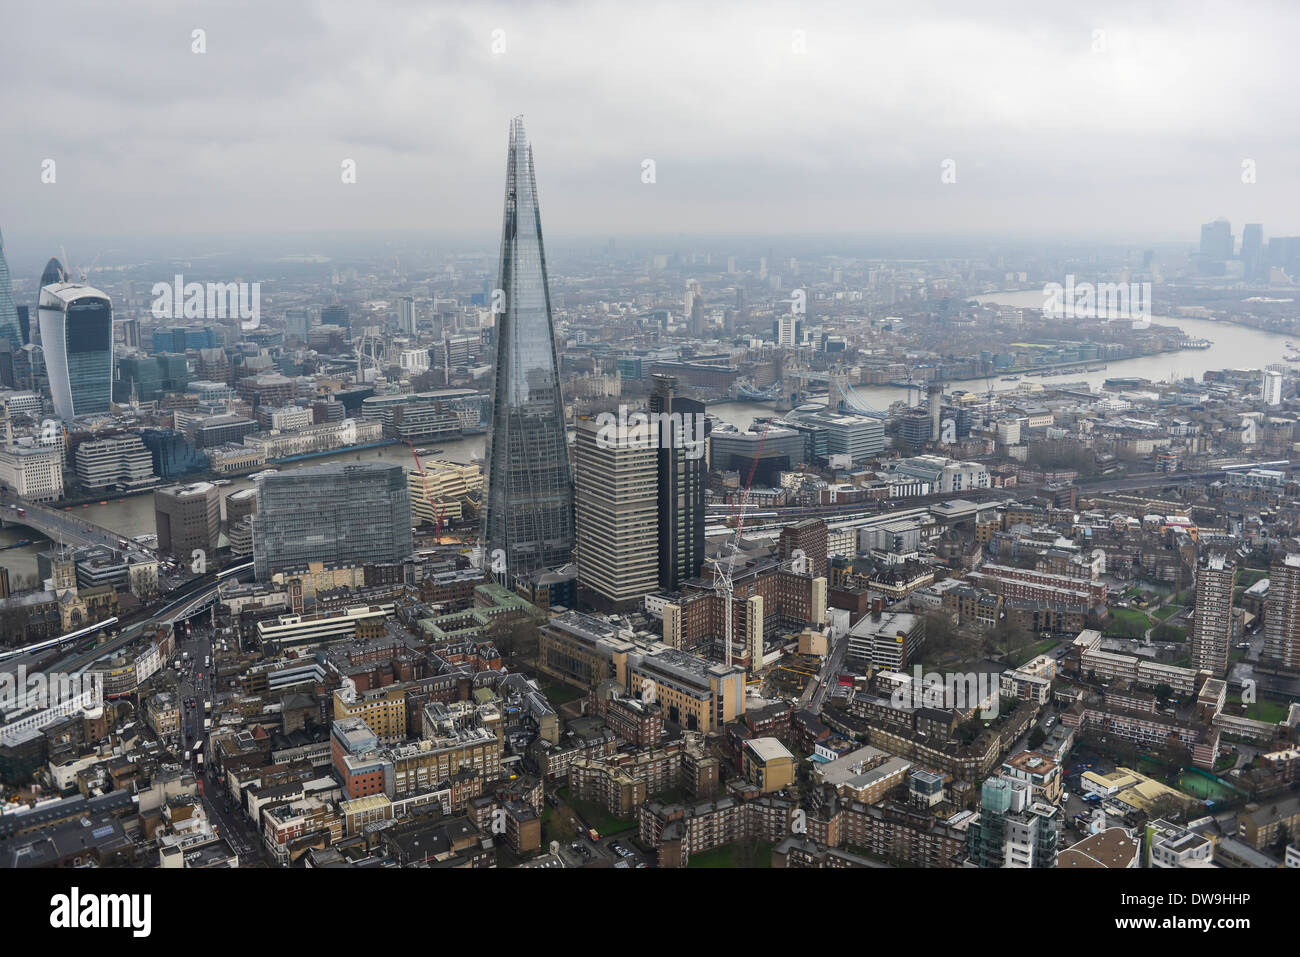 Aerial Photograph showing The Shard with the City of London and Canary Wharf in the background - Stock Image